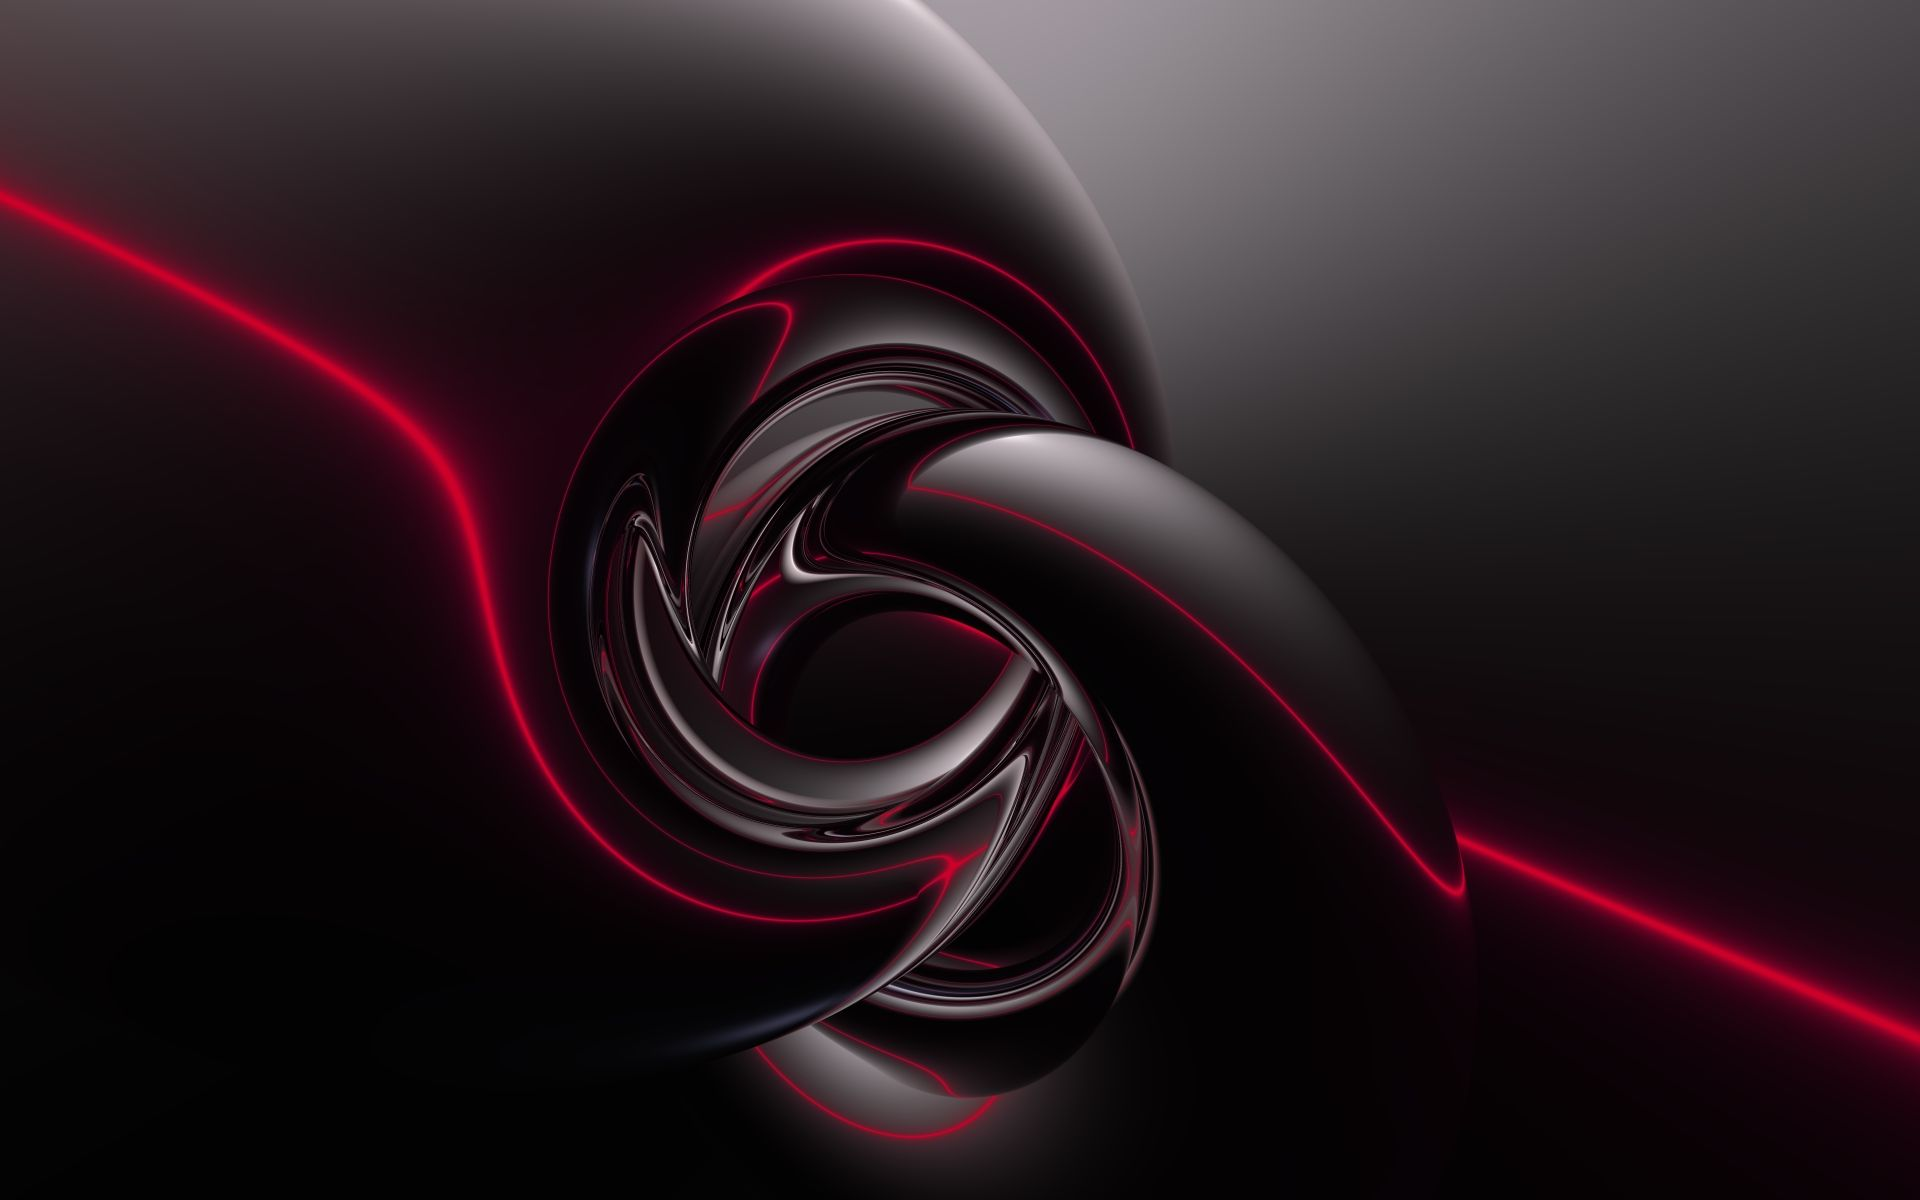 Black And Red Abstract Wallpapers For Laptops Amazing Wallpaperz